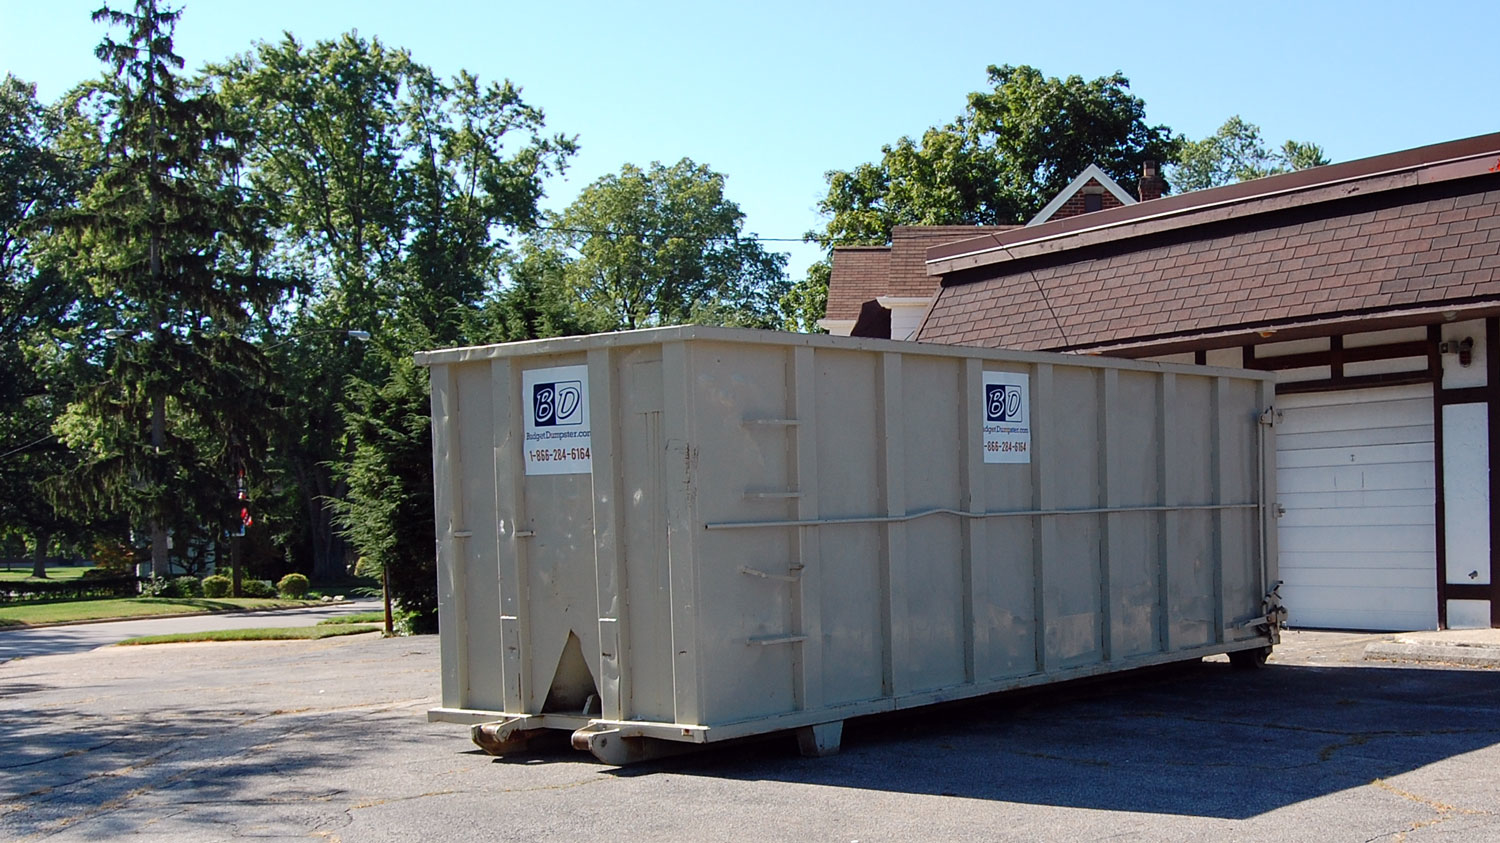 Budget Dumpster Rental Coupons Near Me In 8coupons